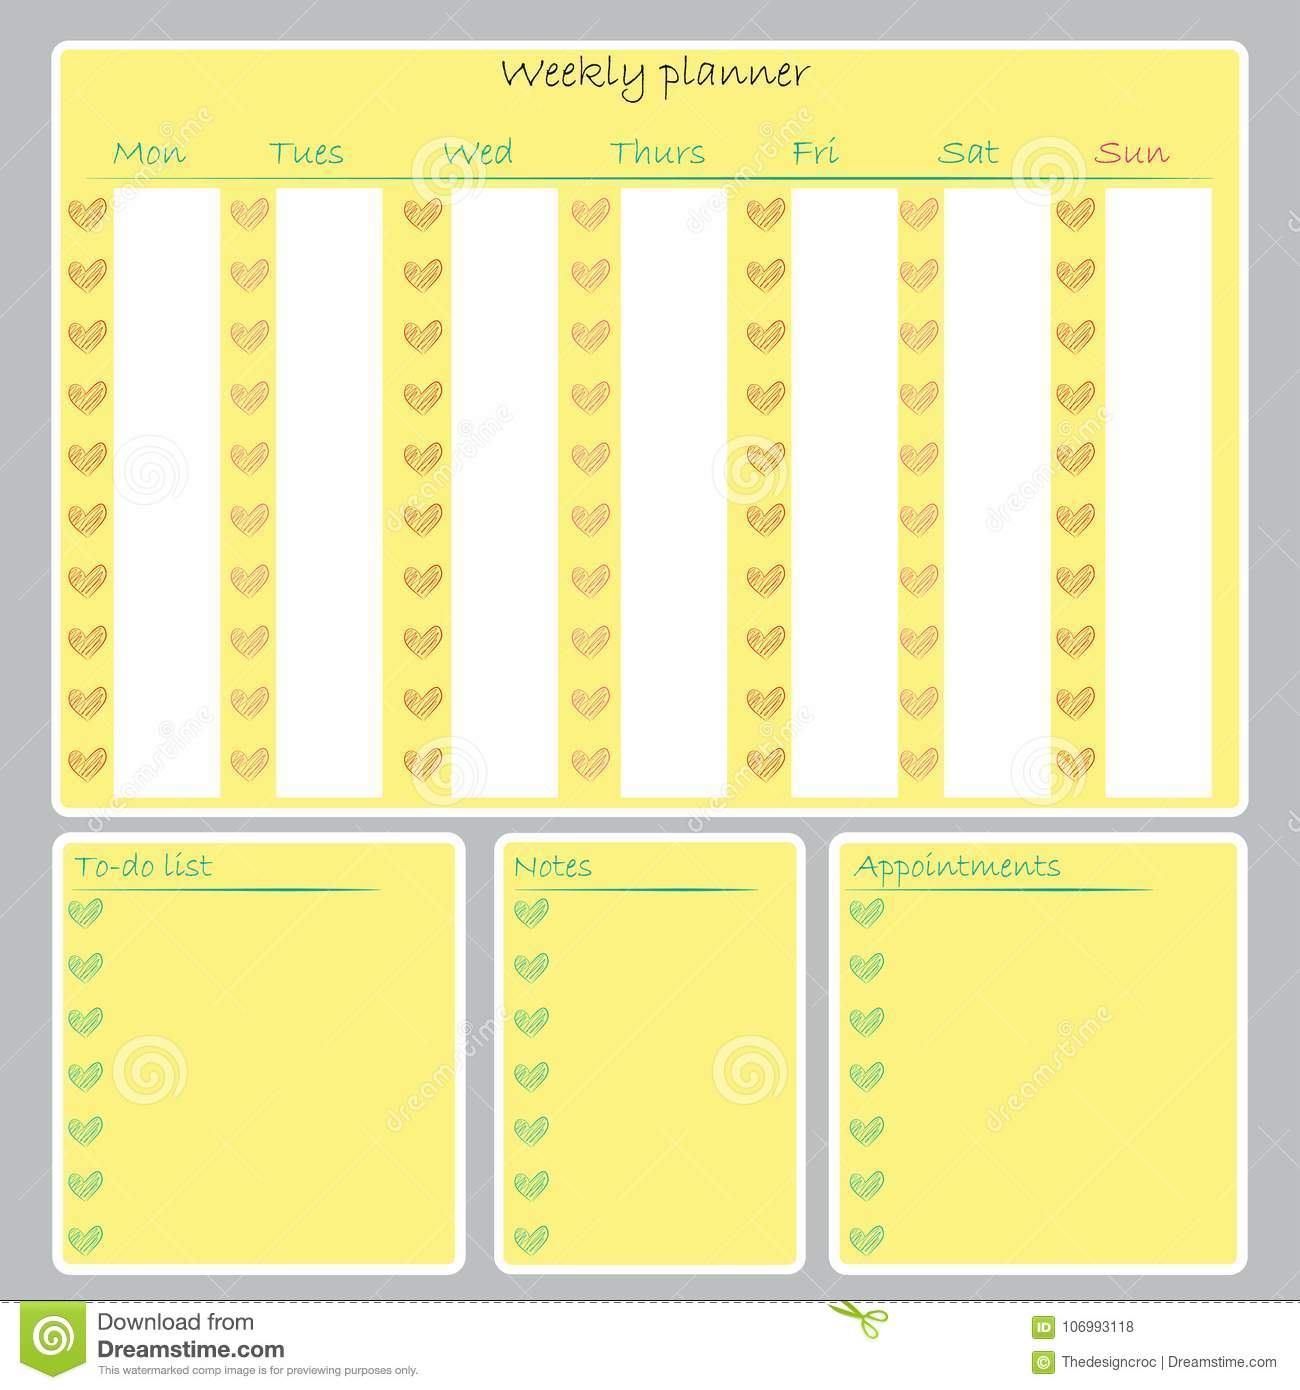 graphic regarding Weekly to Do List Printable known as Weekly Planner Organizer Towards-do Checklist Notes Calendar Printable